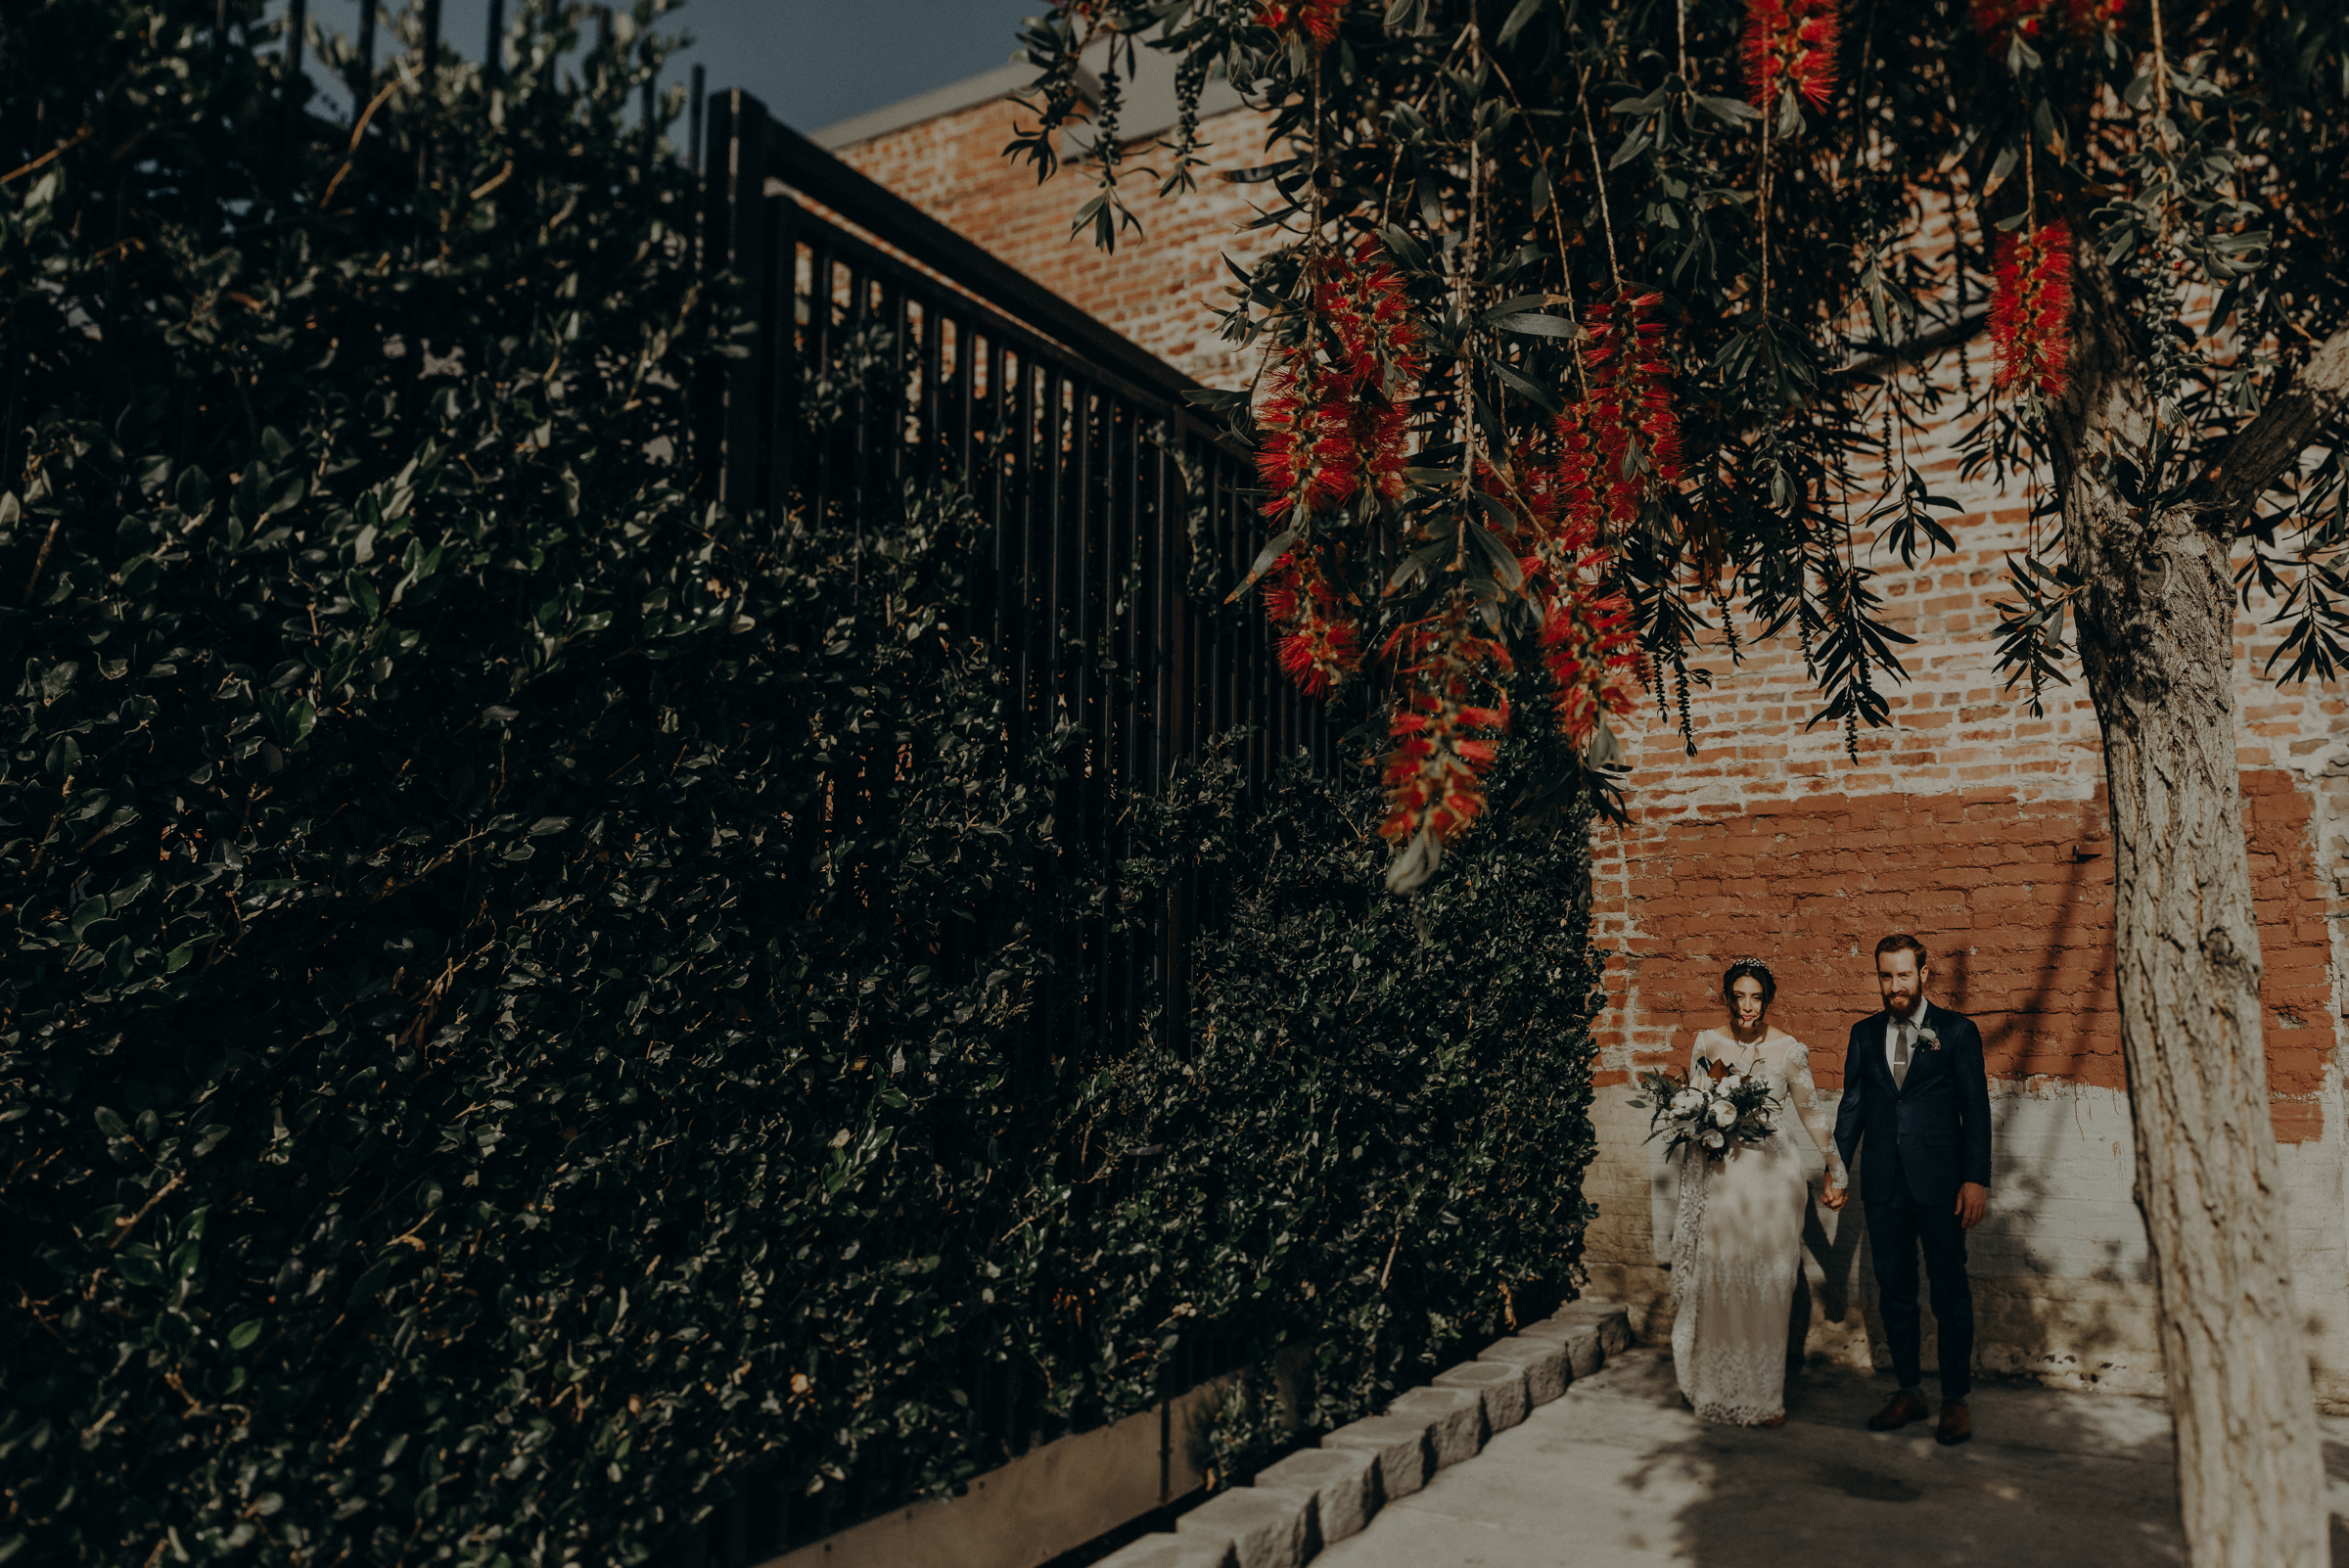 Isaiah + Taylor Photography - The Unique Space Wedding, Los Angeles Wedding Photography 081.jpg